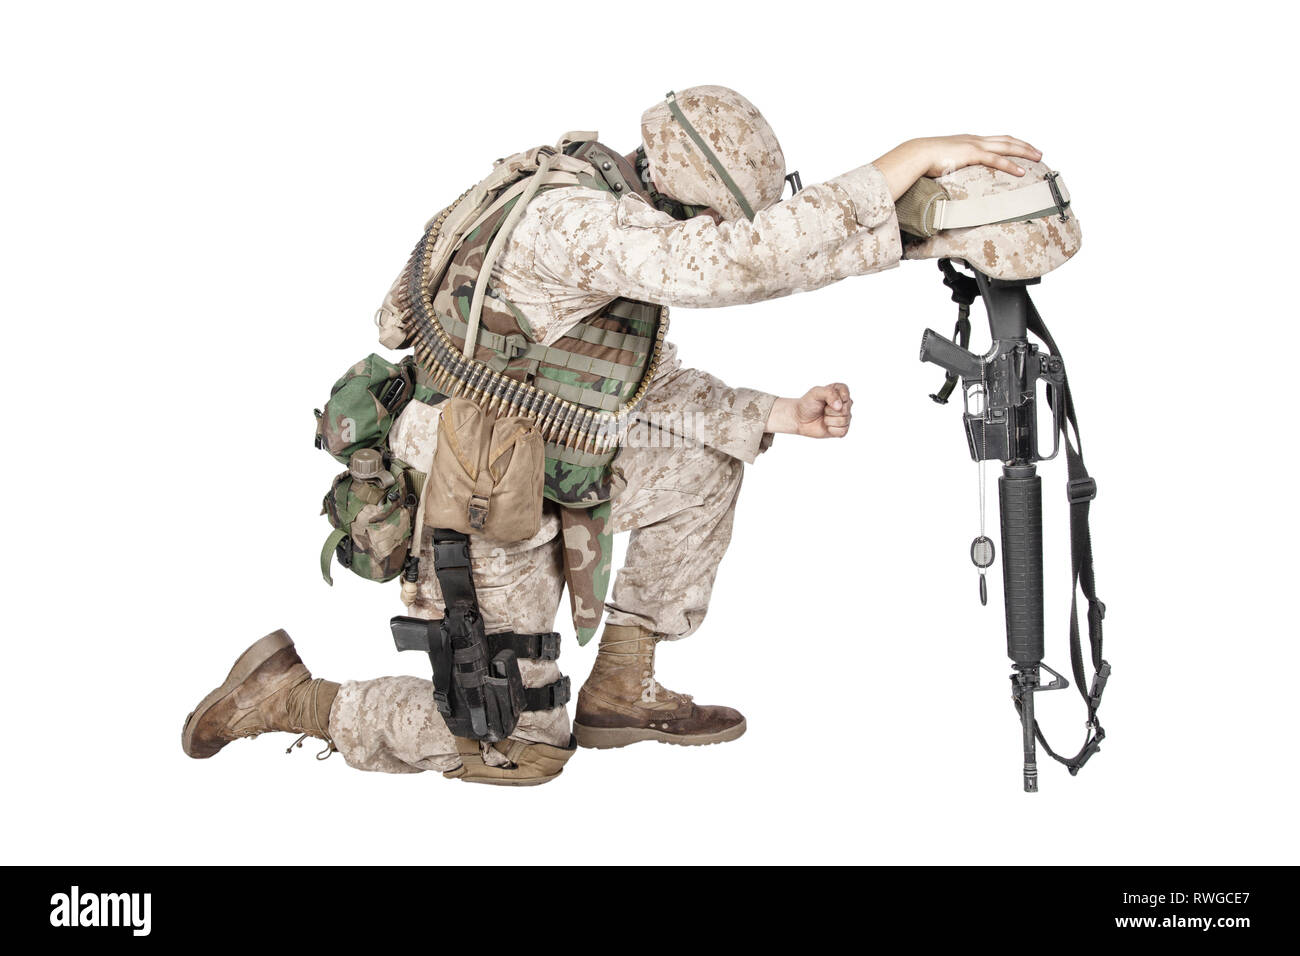 Soldier kneeling and leaning on rifle with helmet in respect for a fallen comrade. - Stock Image